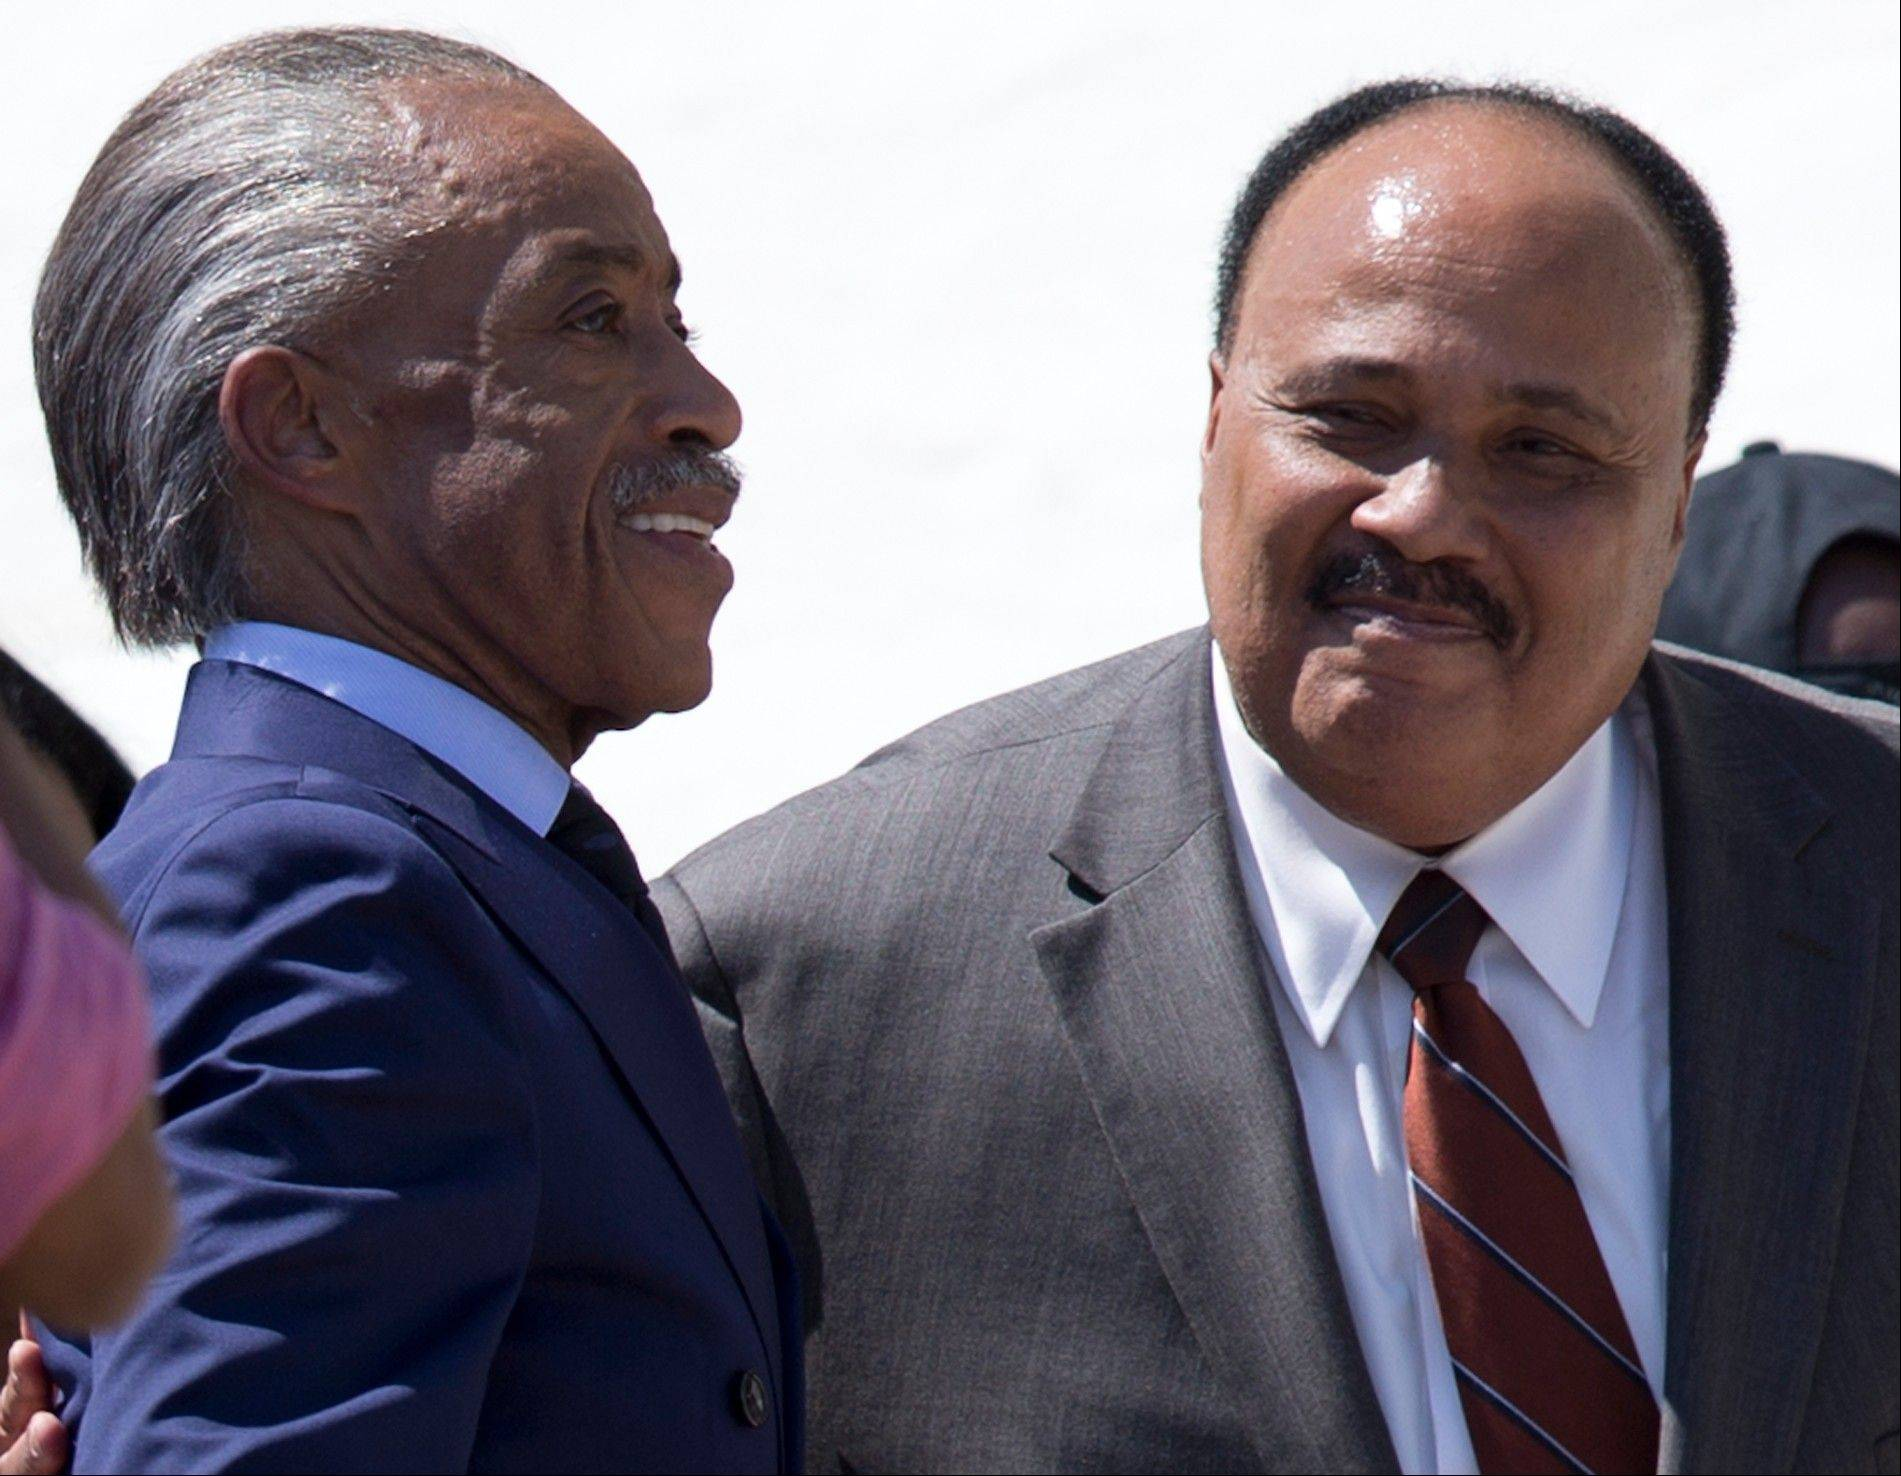 Rev. Al Sharpton, left, and Martin Luther King III stand together during an event to commemorate the 50th anniversary of the 1963 March on Washington at the Lincoln Memorial, Saturday, Aug. 24, 2013, in Washington. The eldest son of Dr. Martin Luther King Jr. says blacks can rightfully celebrate his father's life and work with pride, but much more must be accomplished.